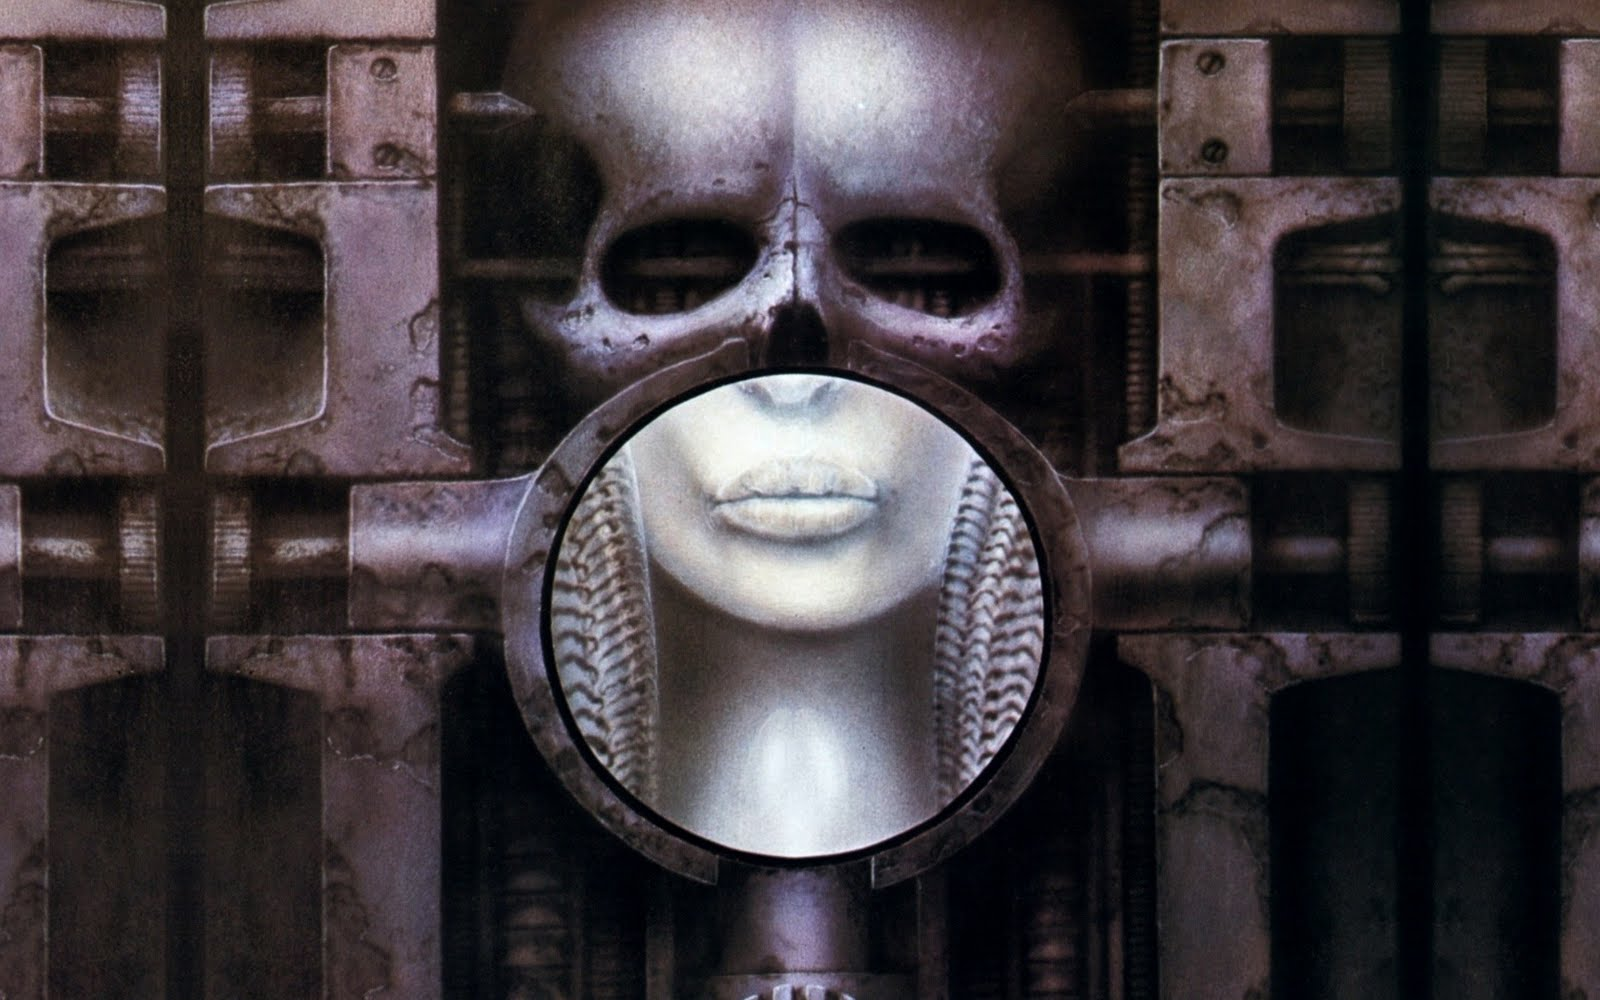 Wallpapers Photo Art: HR Giger Wallpaper, Art Wallpaper